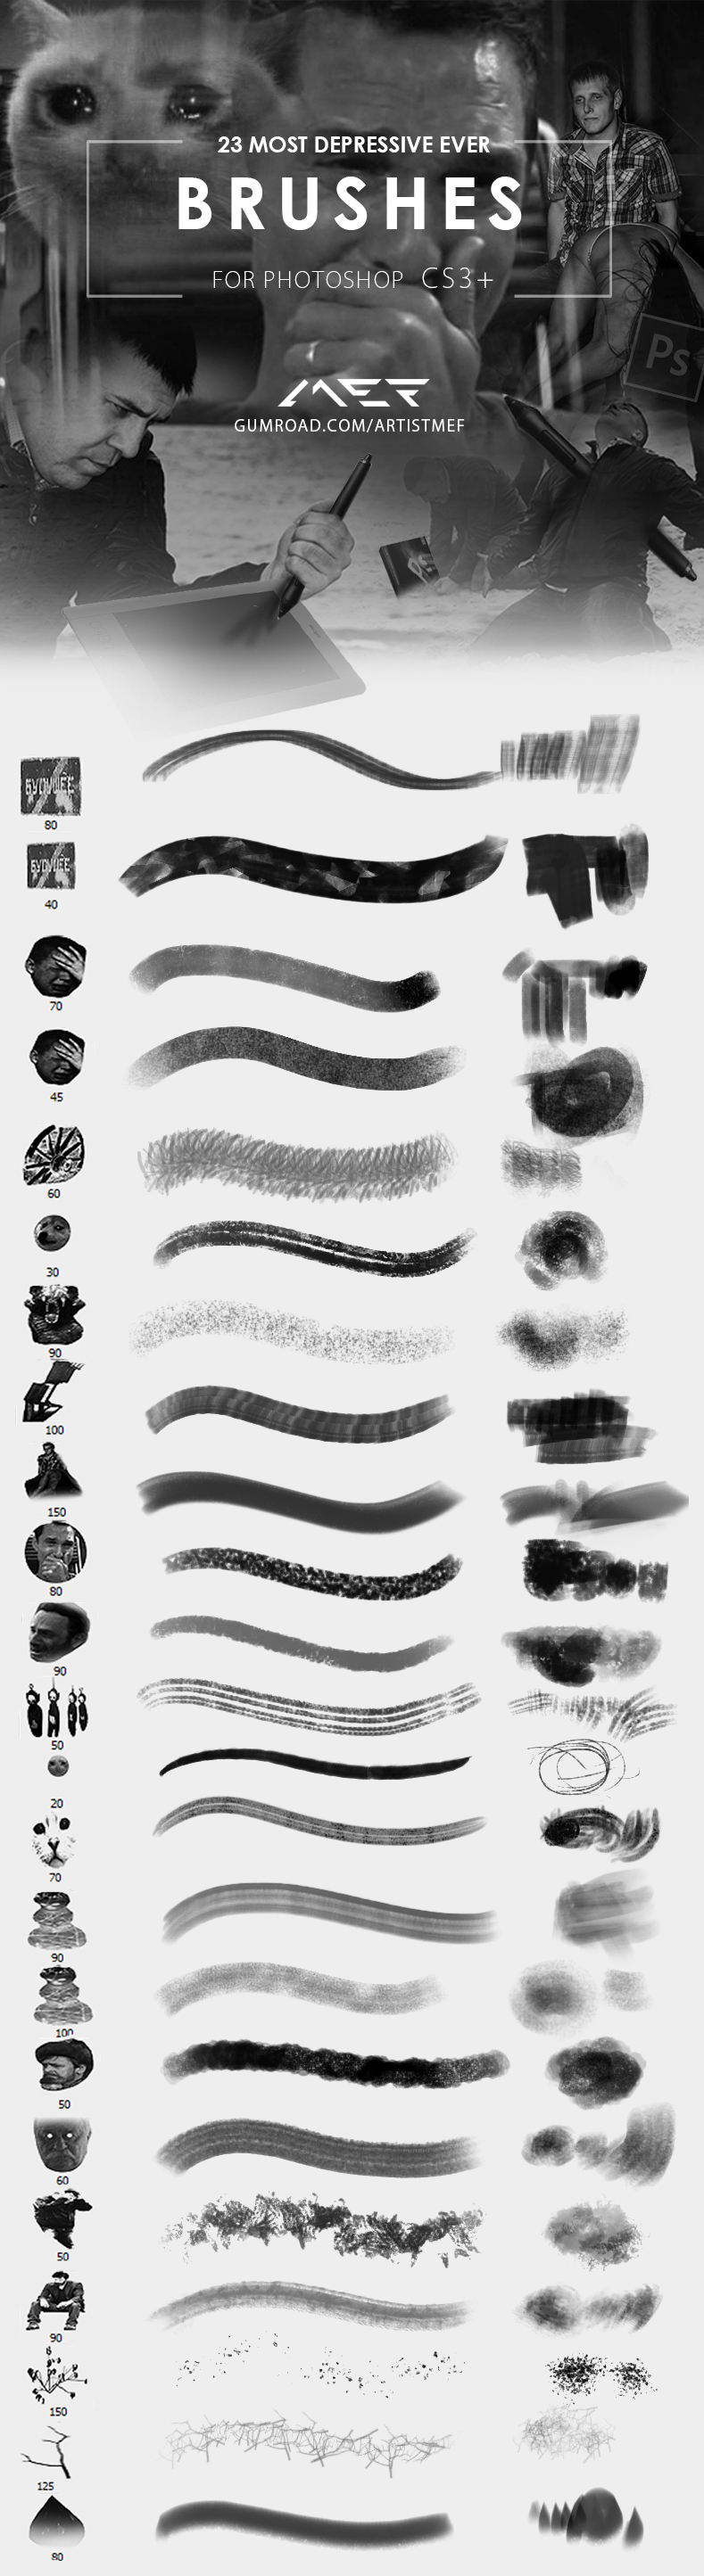 Most Depressive Photoshop Brushes Ever V.1.0. by ArtistMEF